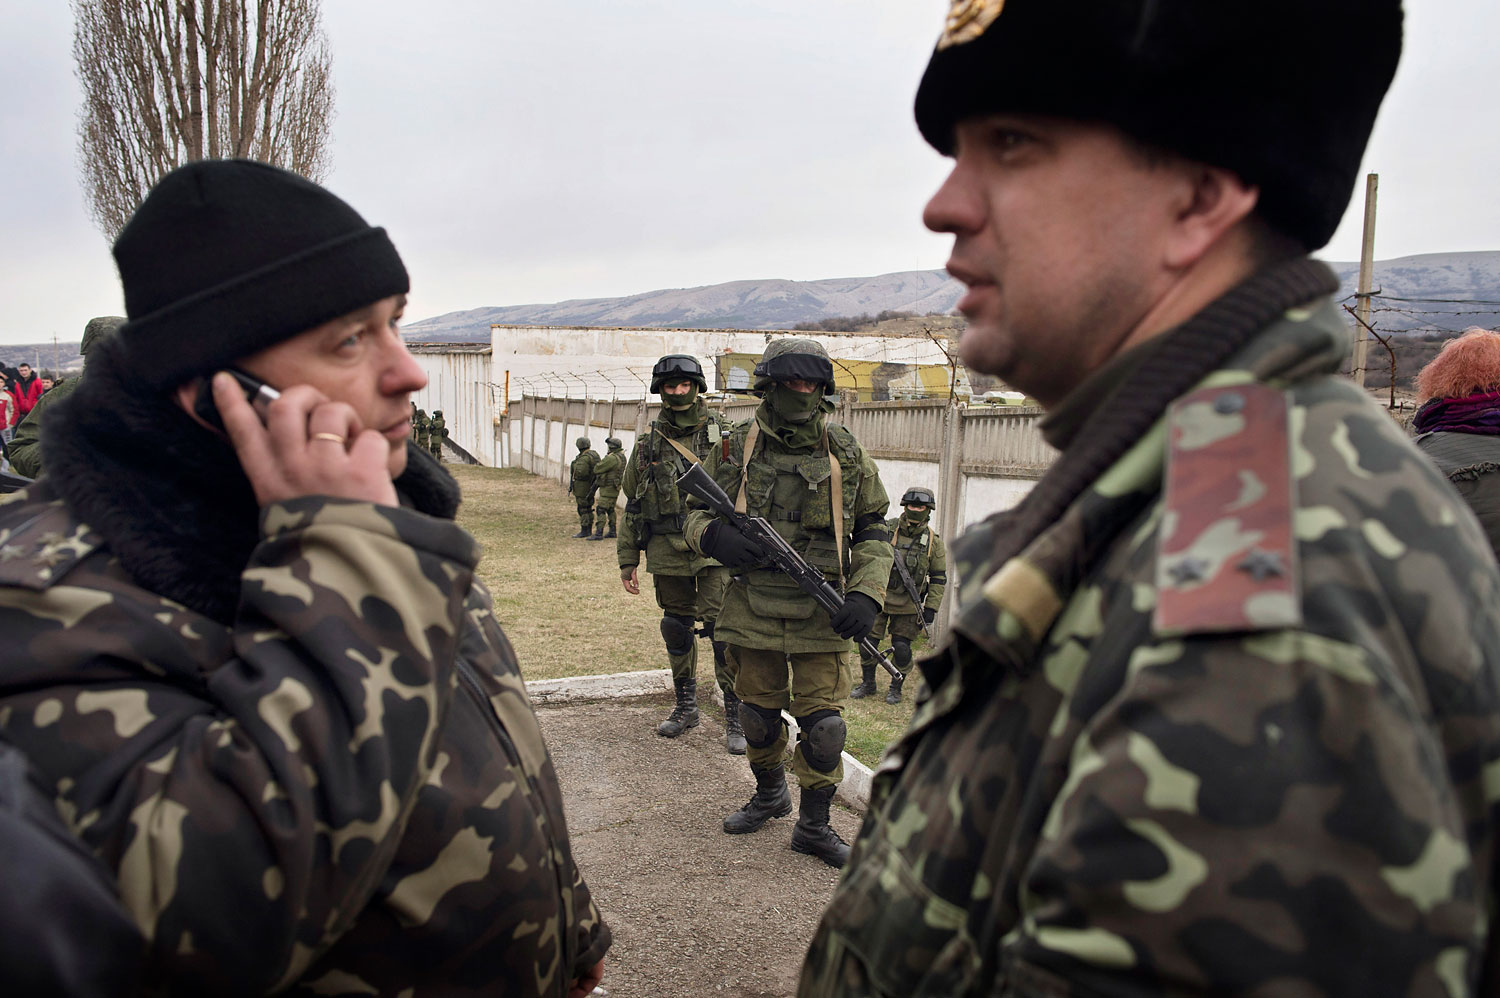 The Ukrainian commander, Col. Sergei Starozhenko, left, outside of his base in the Crimean village of Perevalnoye, on March 2, 2014.